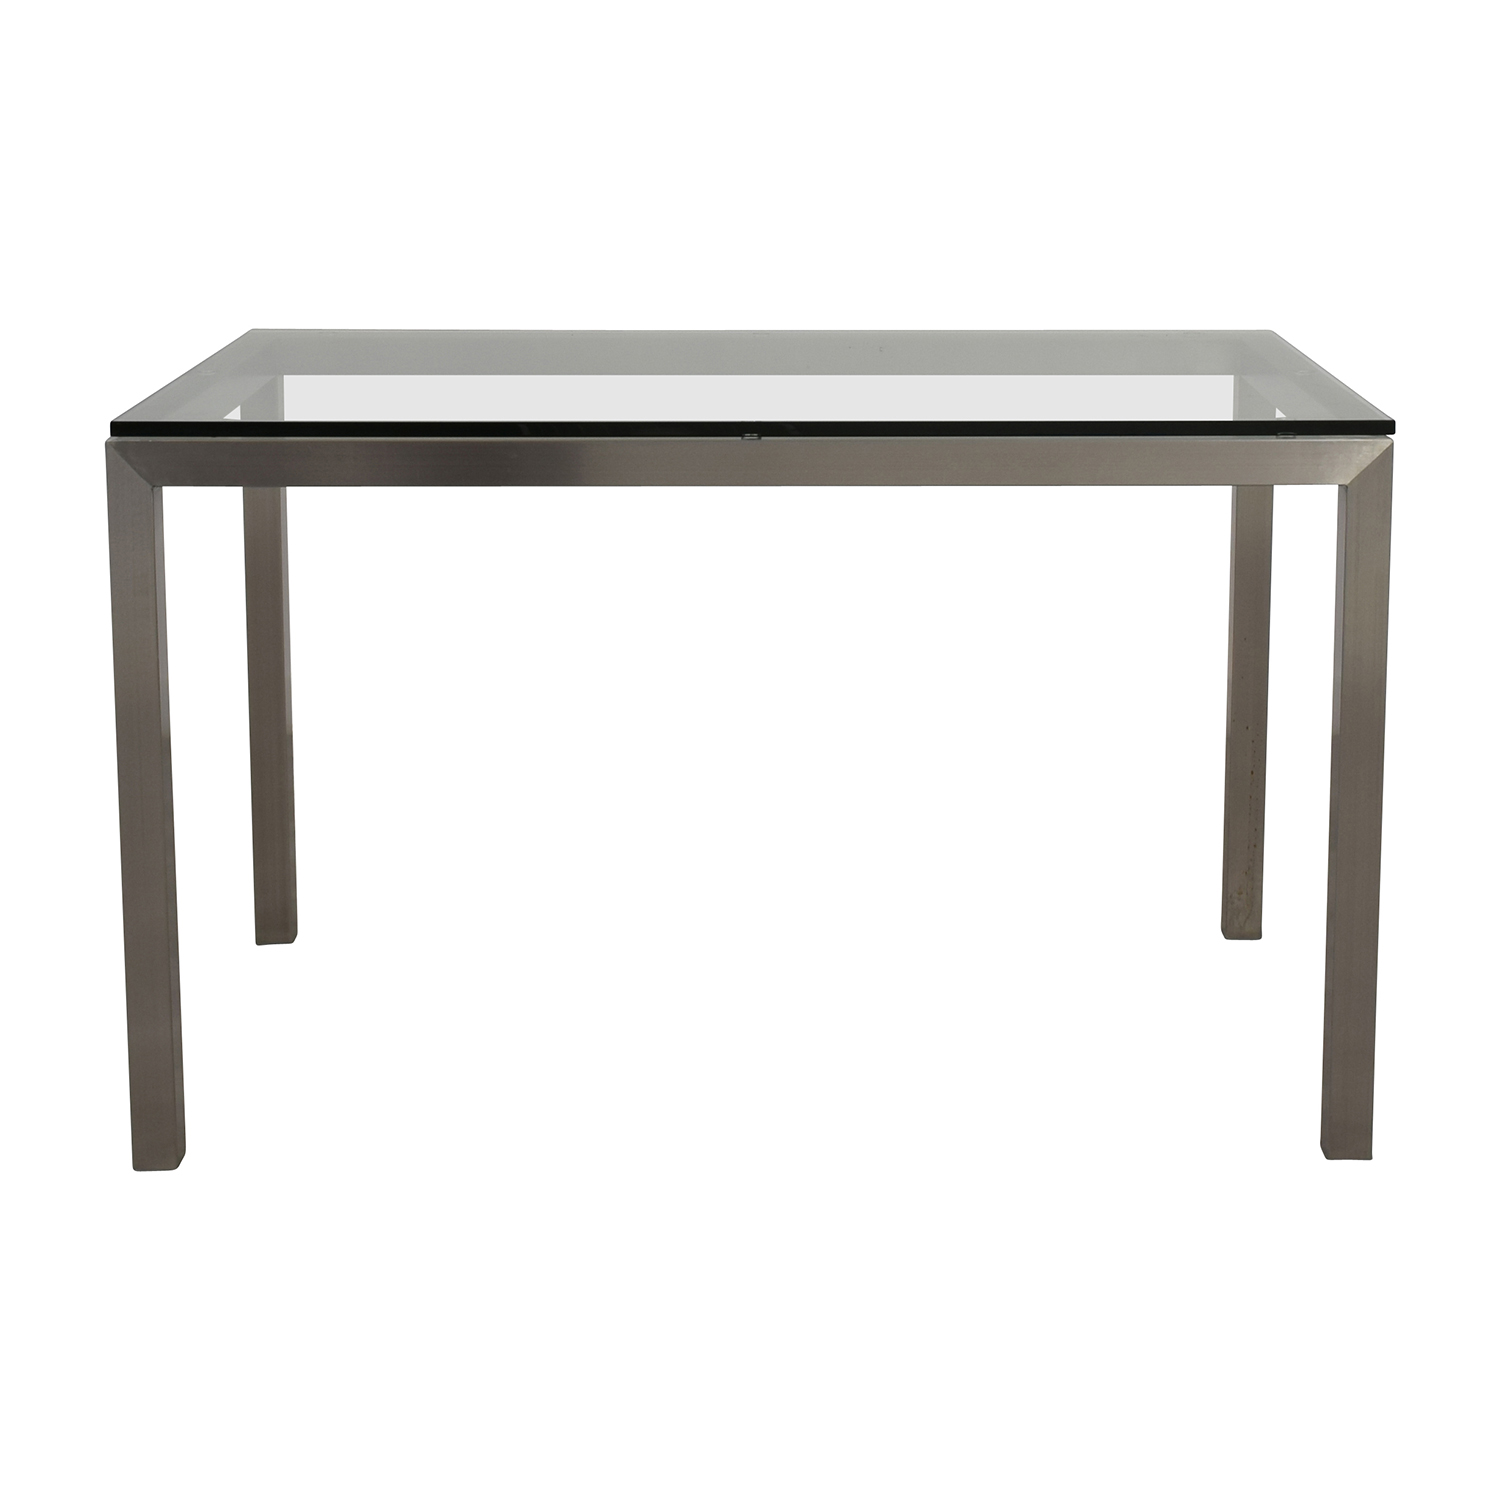 Attirant Crate And Barrel Crate U0026 Barrel Glass And Stainless Steel Dining Table Used